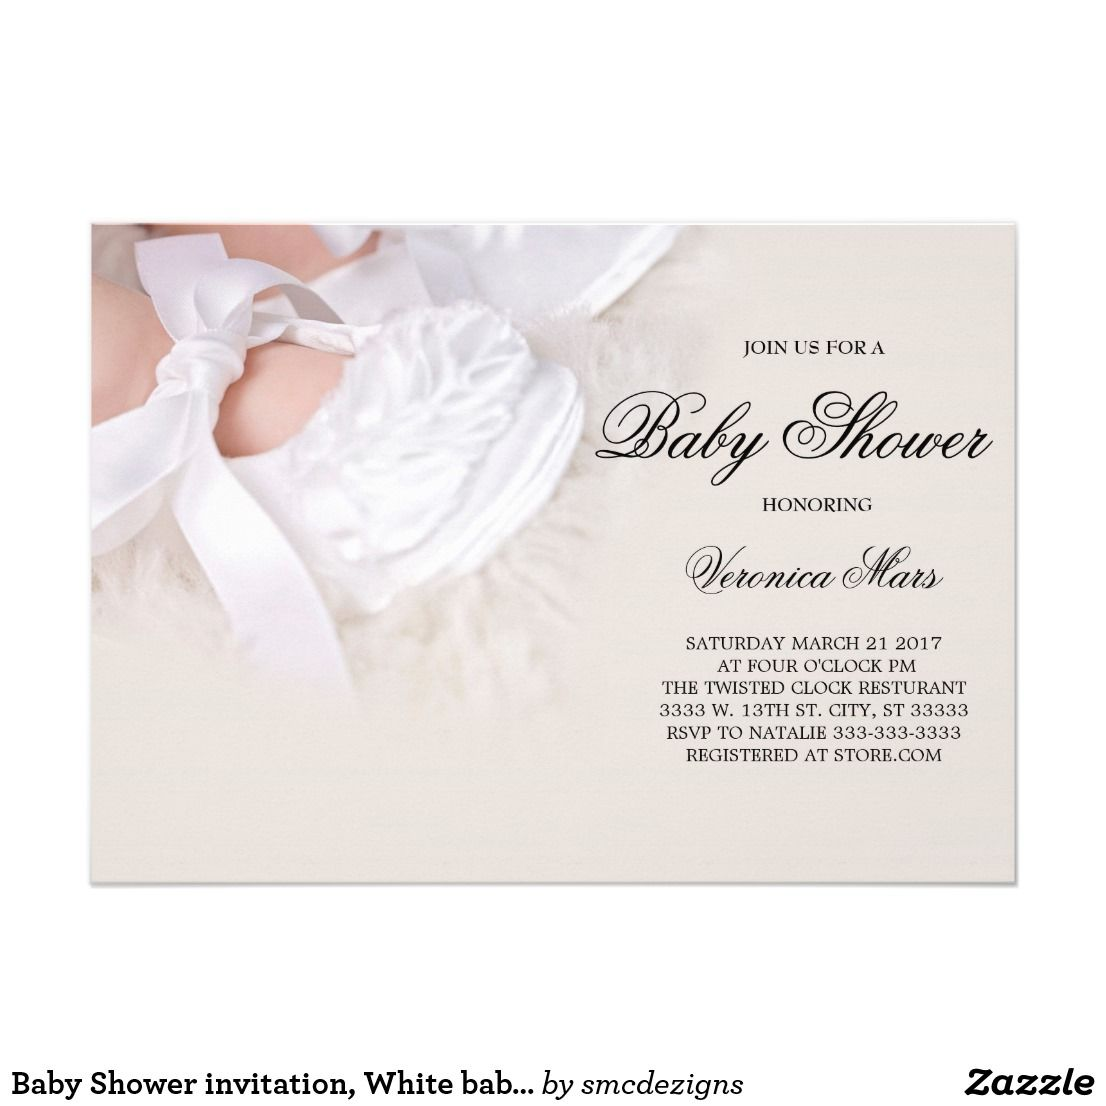 Baby Shower invitation, White baby shoes Card | White baby shoes